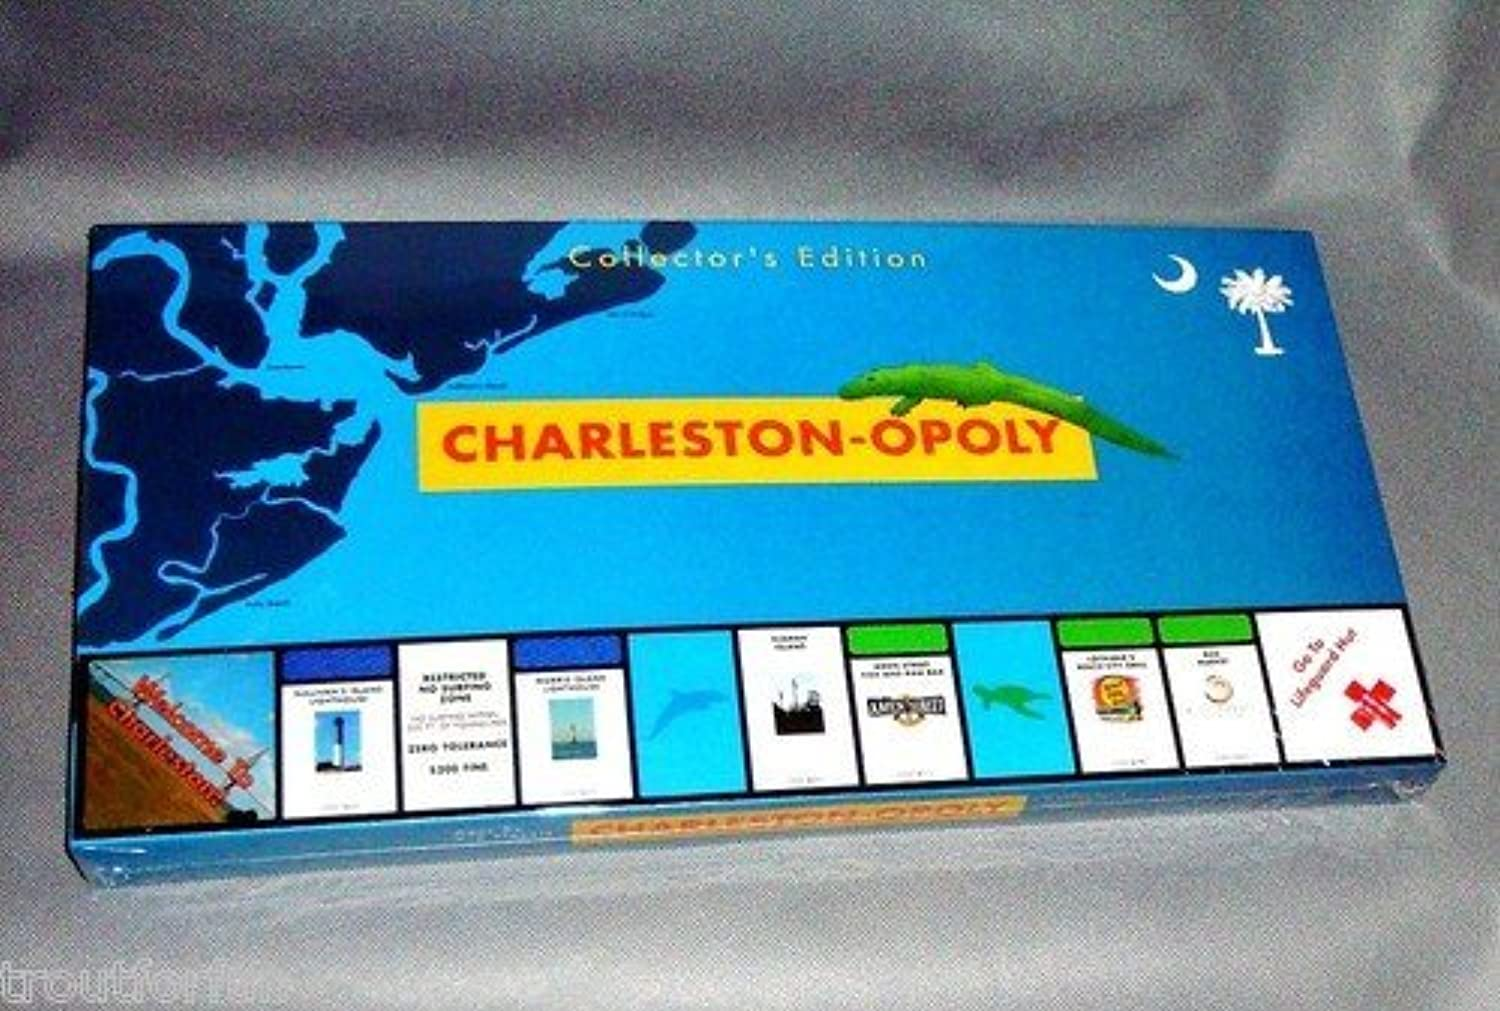 CHARLESTON-OPOLY - Collectors Edition by Charleston-opoly